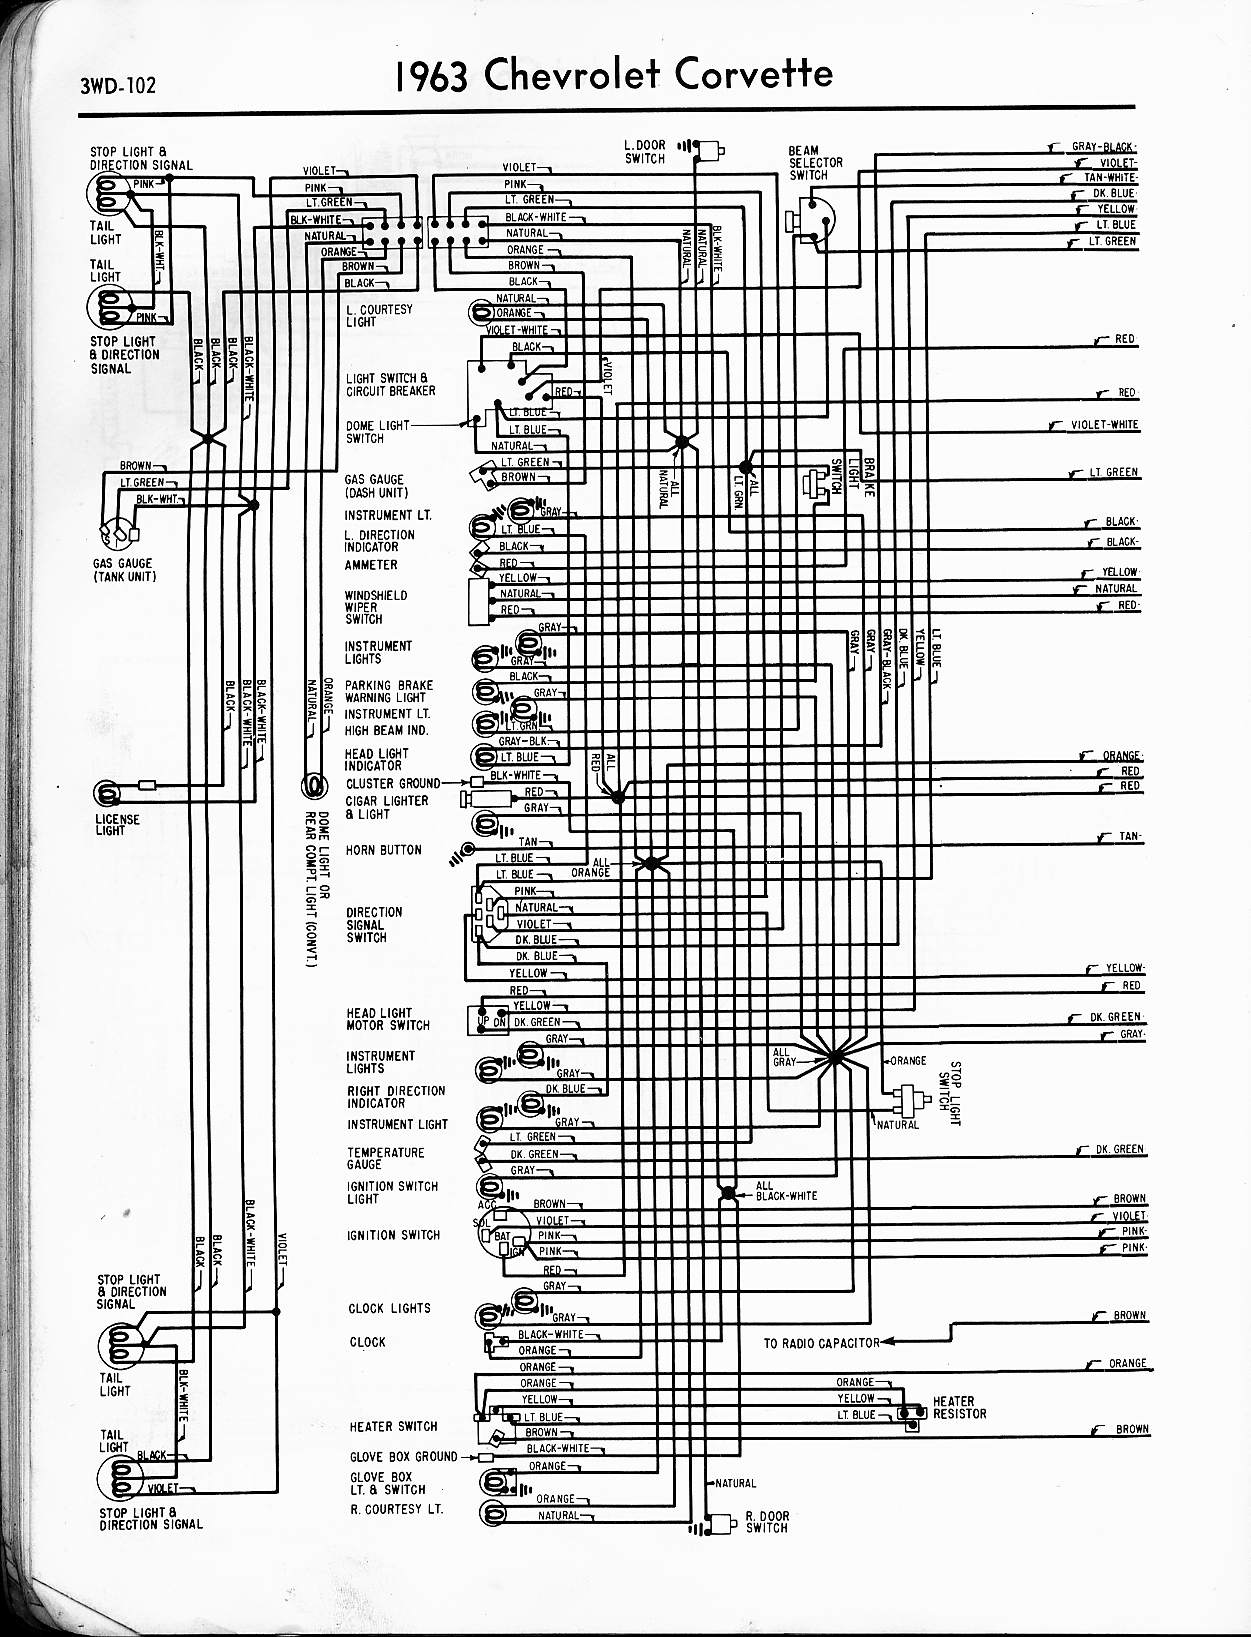 MWireChev63_3WD 102 57 65 chevy wiring diagrams 66 Corvette at couponss.co